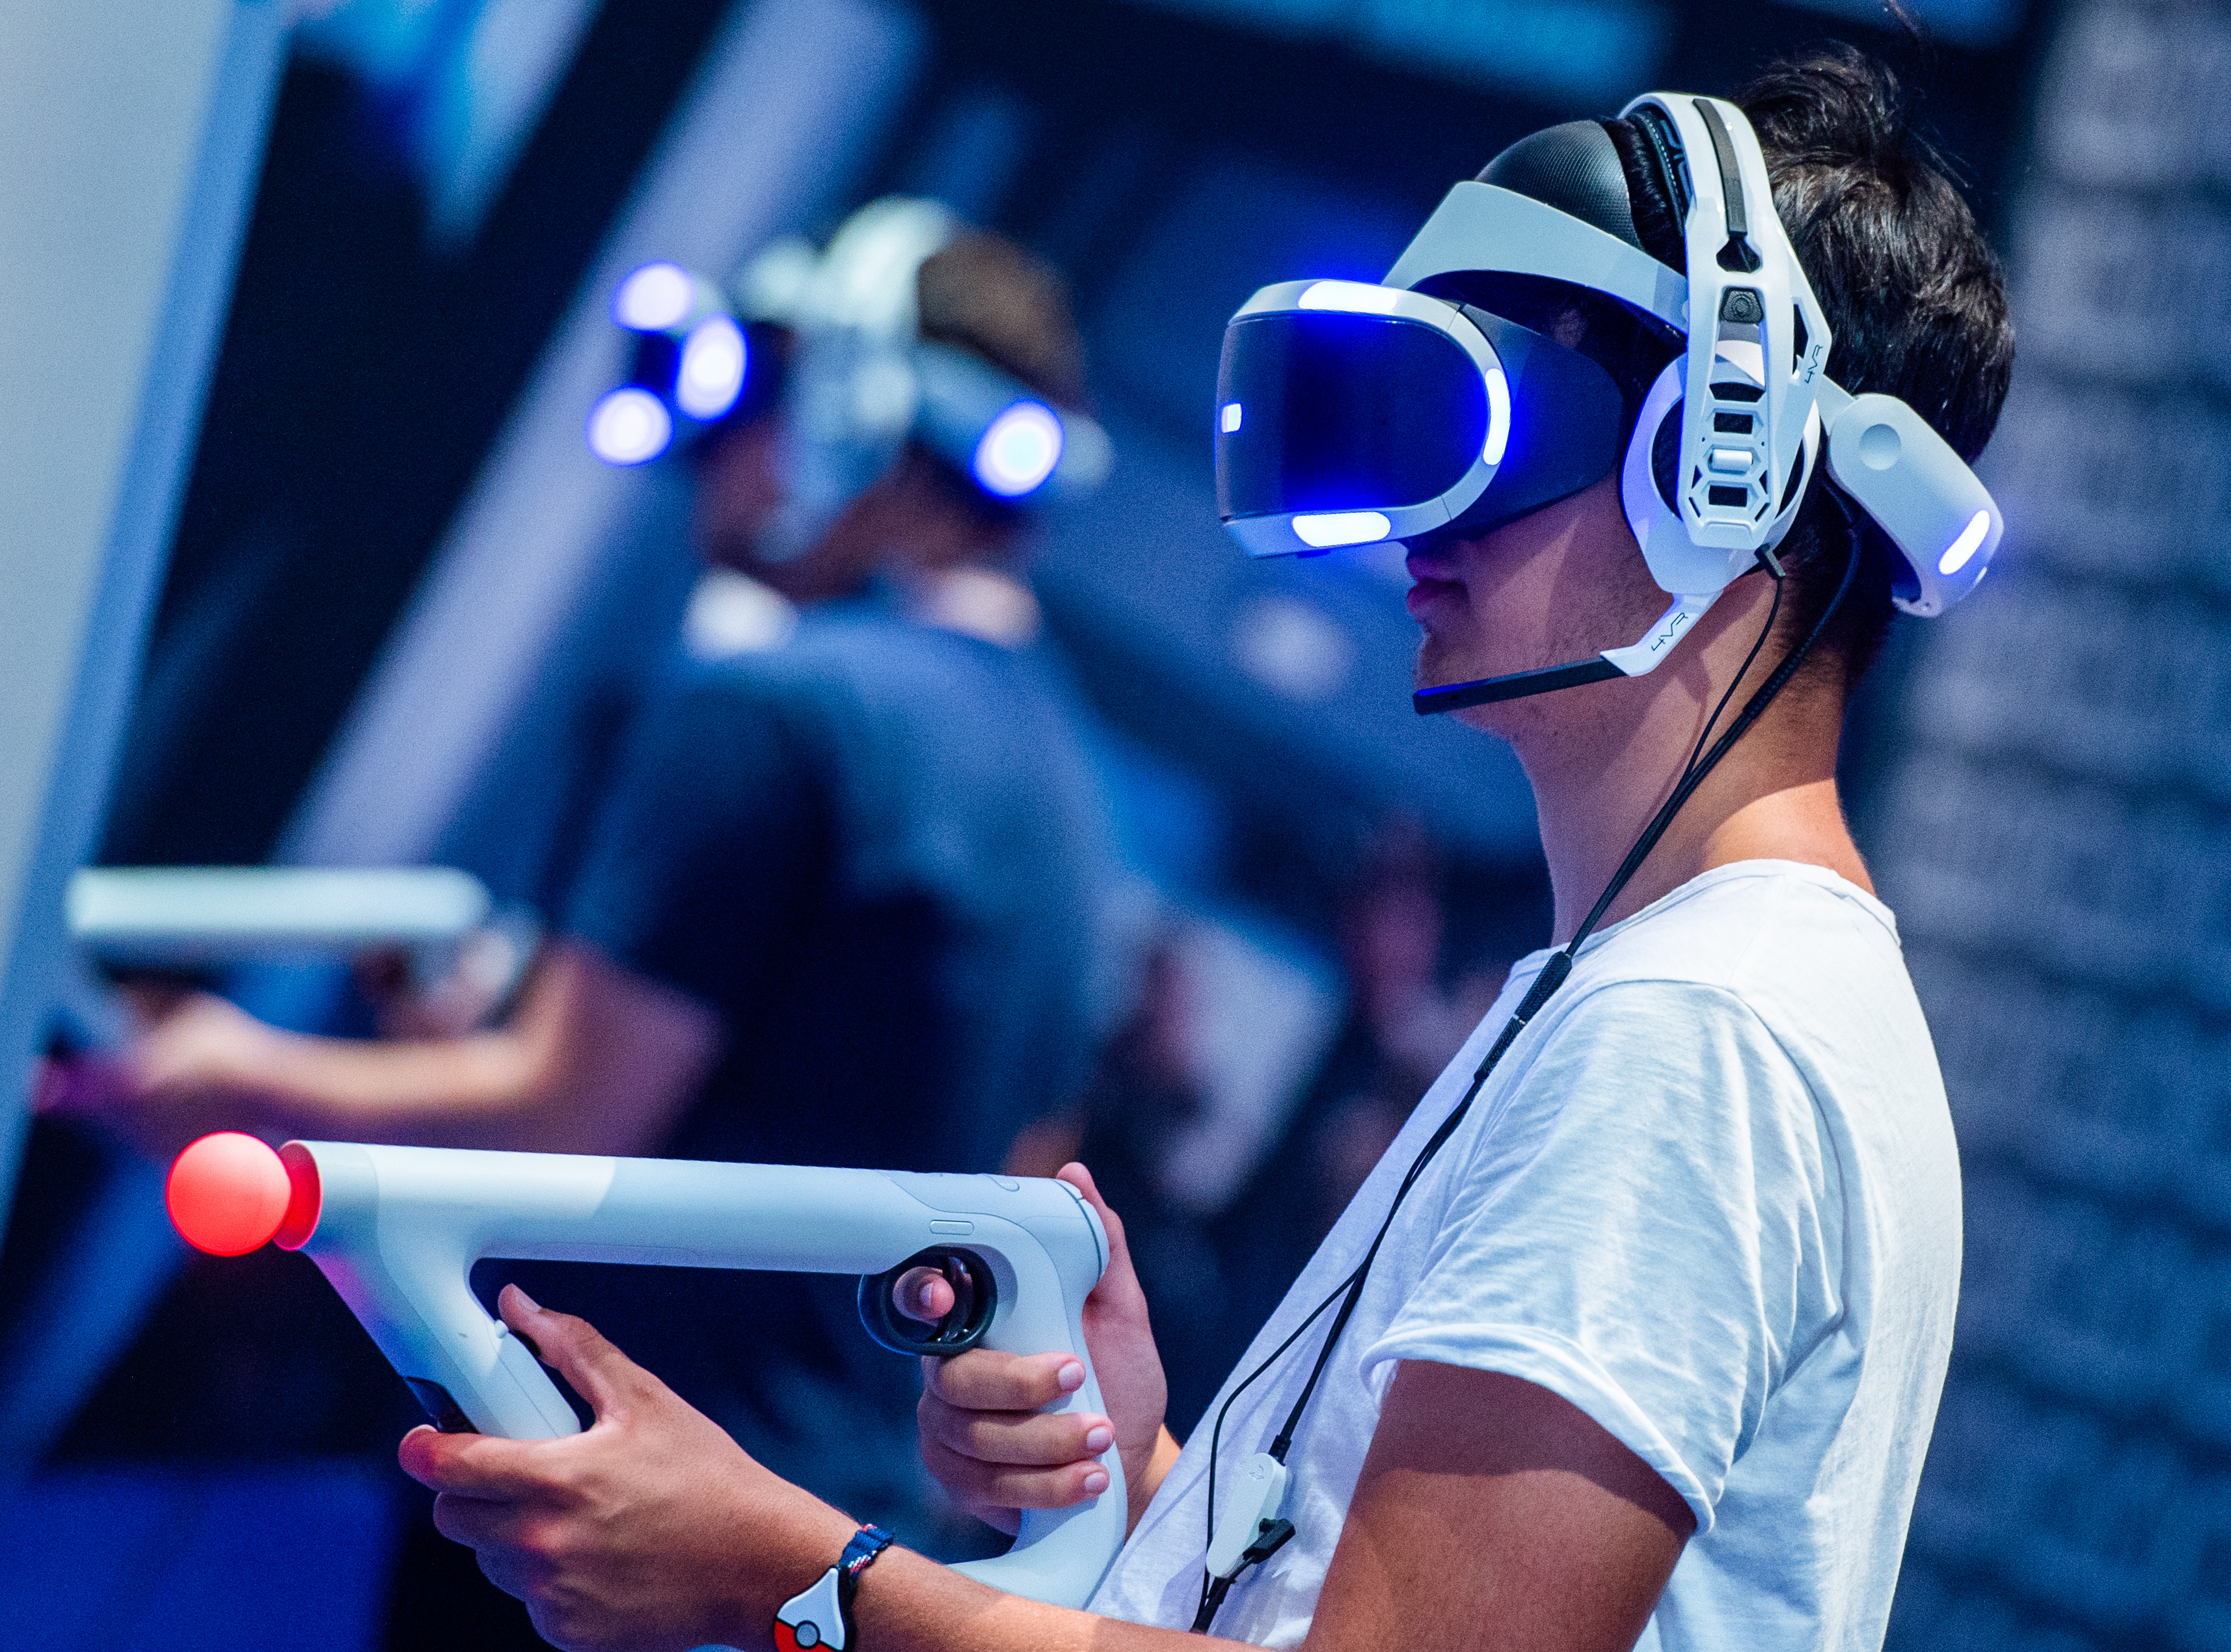 A visitor wearing VR glasses tries out a video game during the Gamescom convention on August 22, 2018 in Cologne, western Germany. -(CHRISTOPHE GATEAU/AFP/Getty Images)